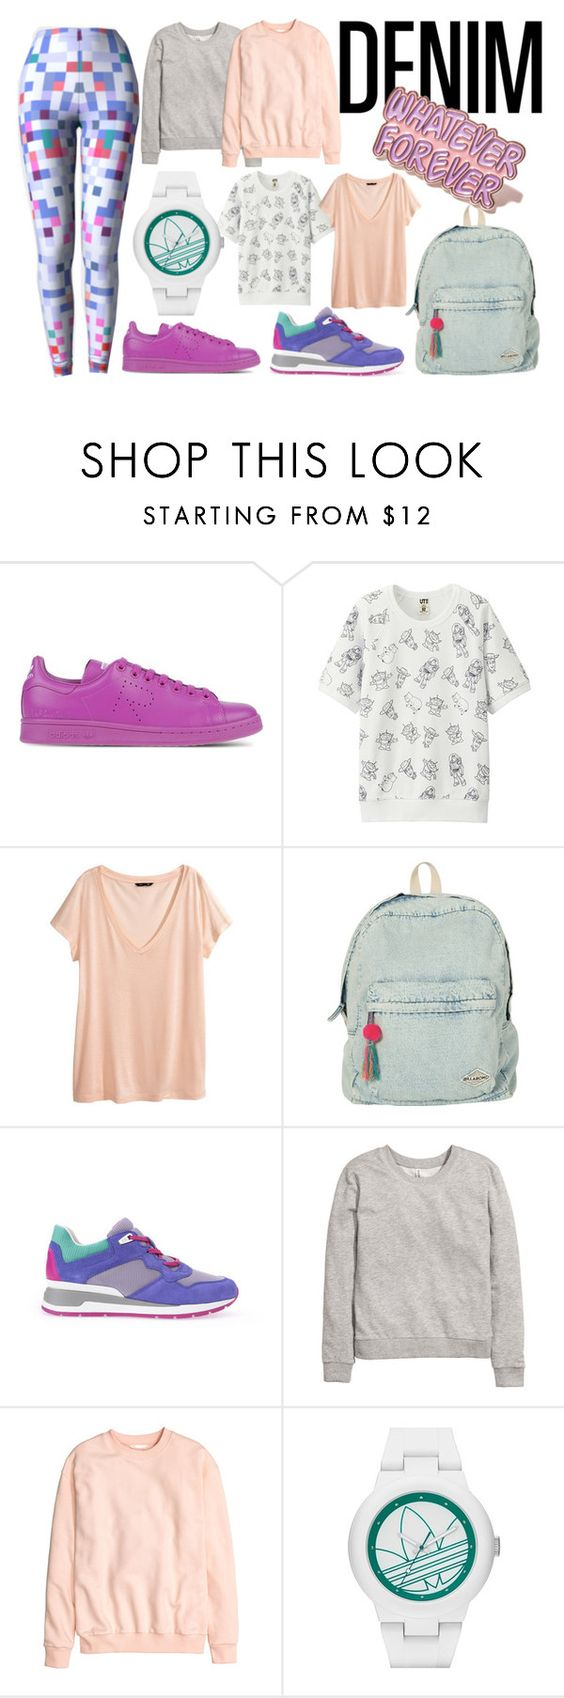 """80s inspired"" by kapotka ❤ liked on Polyvore featuring Raf Simons, Uniqlo, H&M, Billabong, Geox, adidas and Local Heroes"